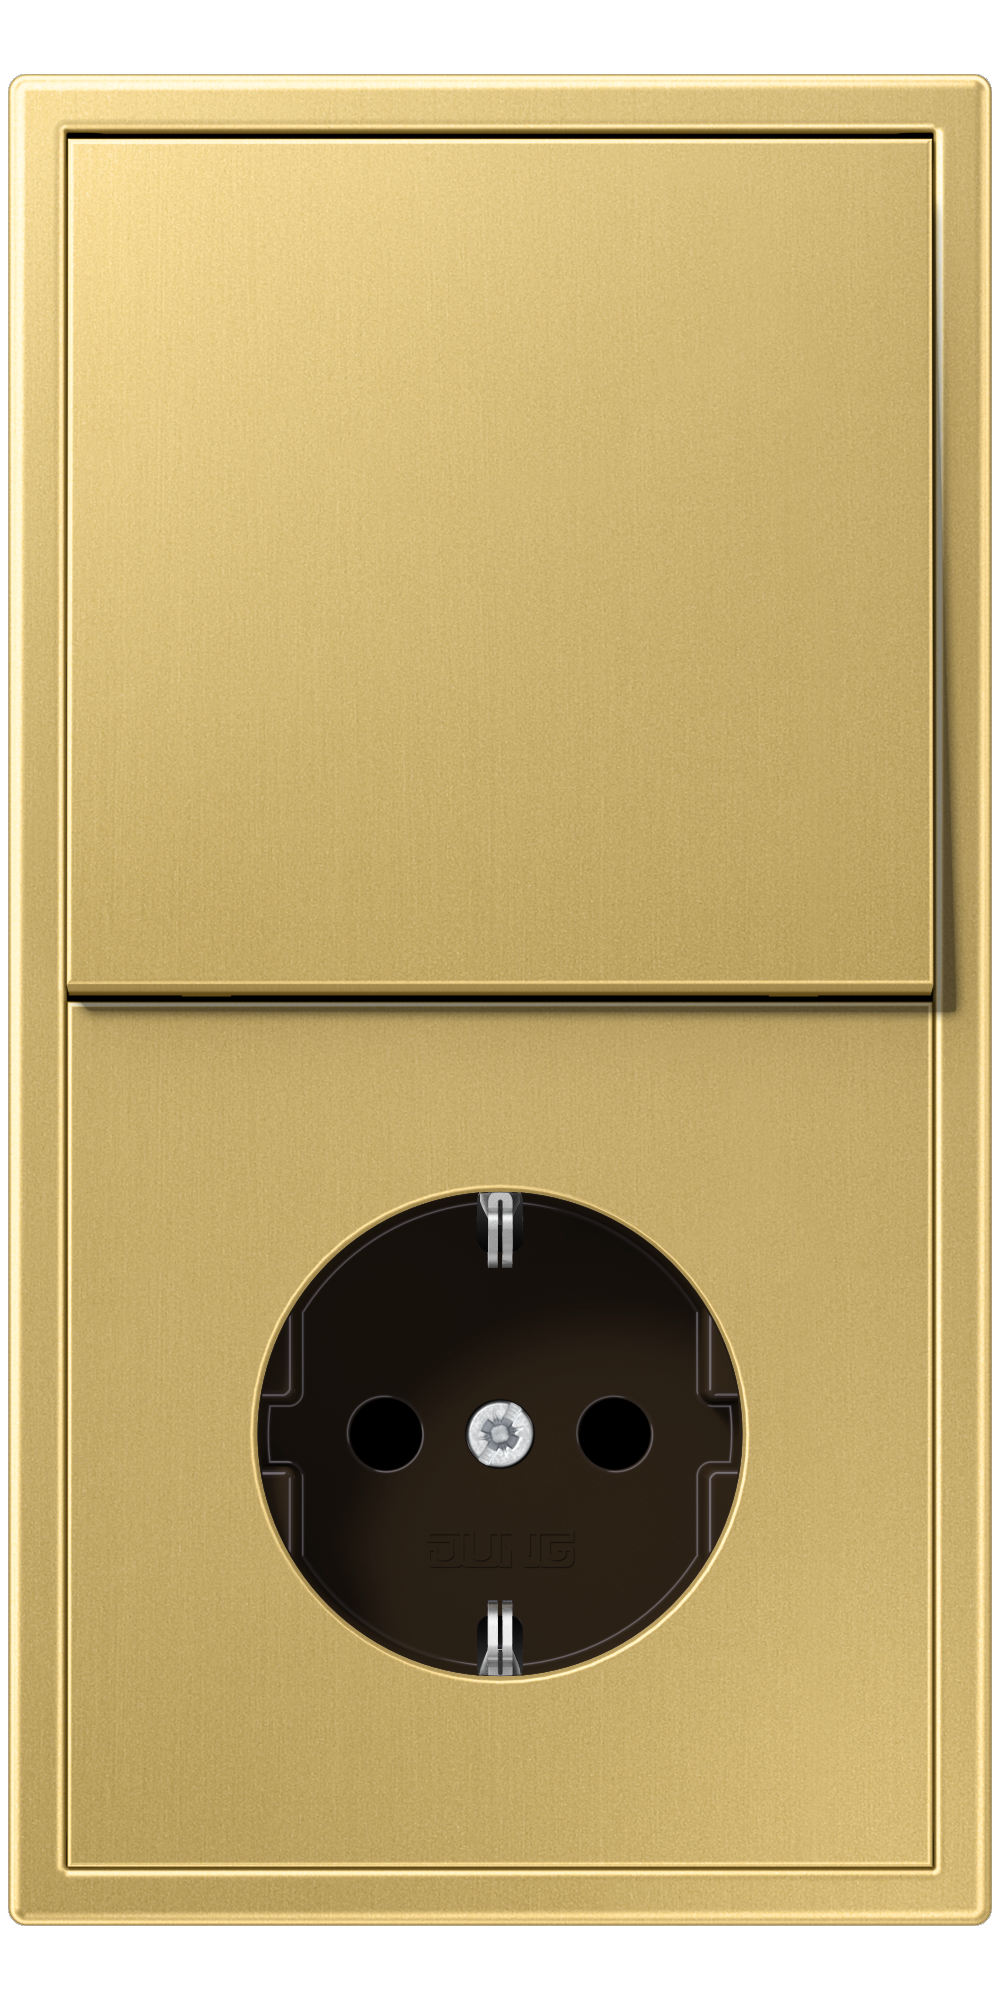 JUNG_LS990_classic_brass_switch-socket